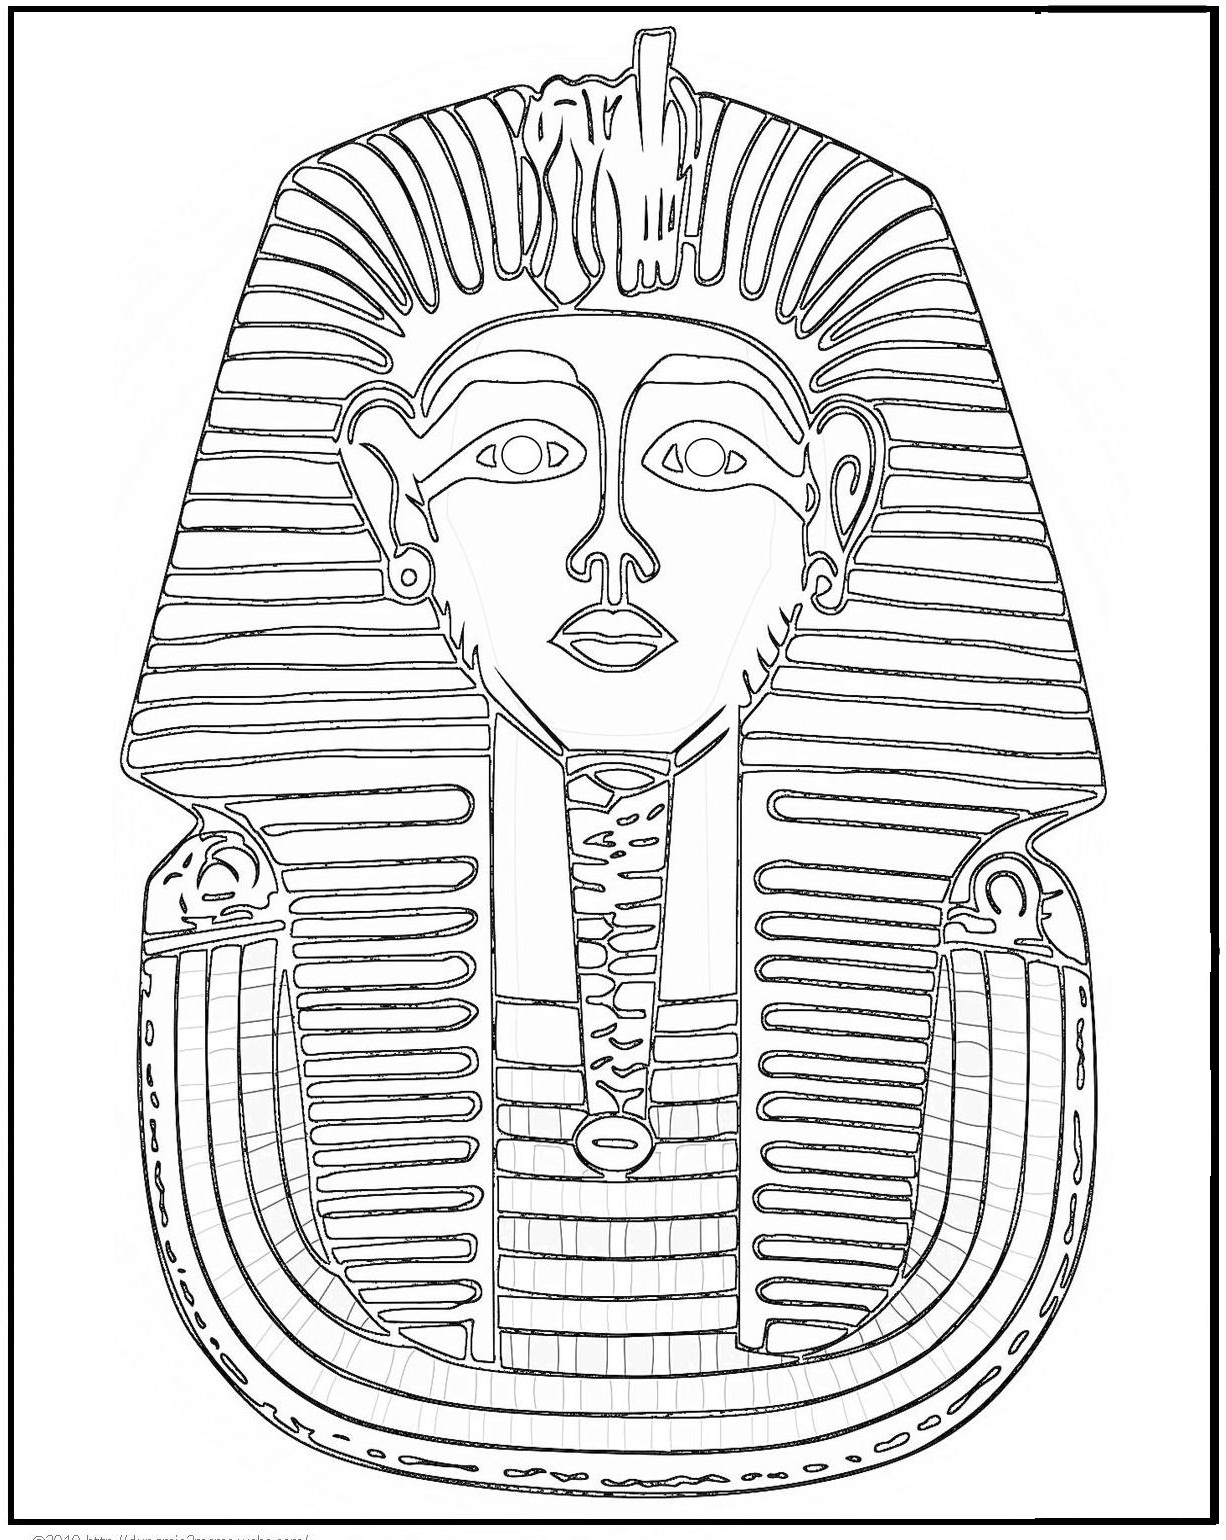 Coloring Pages Ancient Egyptian Coloring Pages free printable ancient egypt coloring pages for kids page